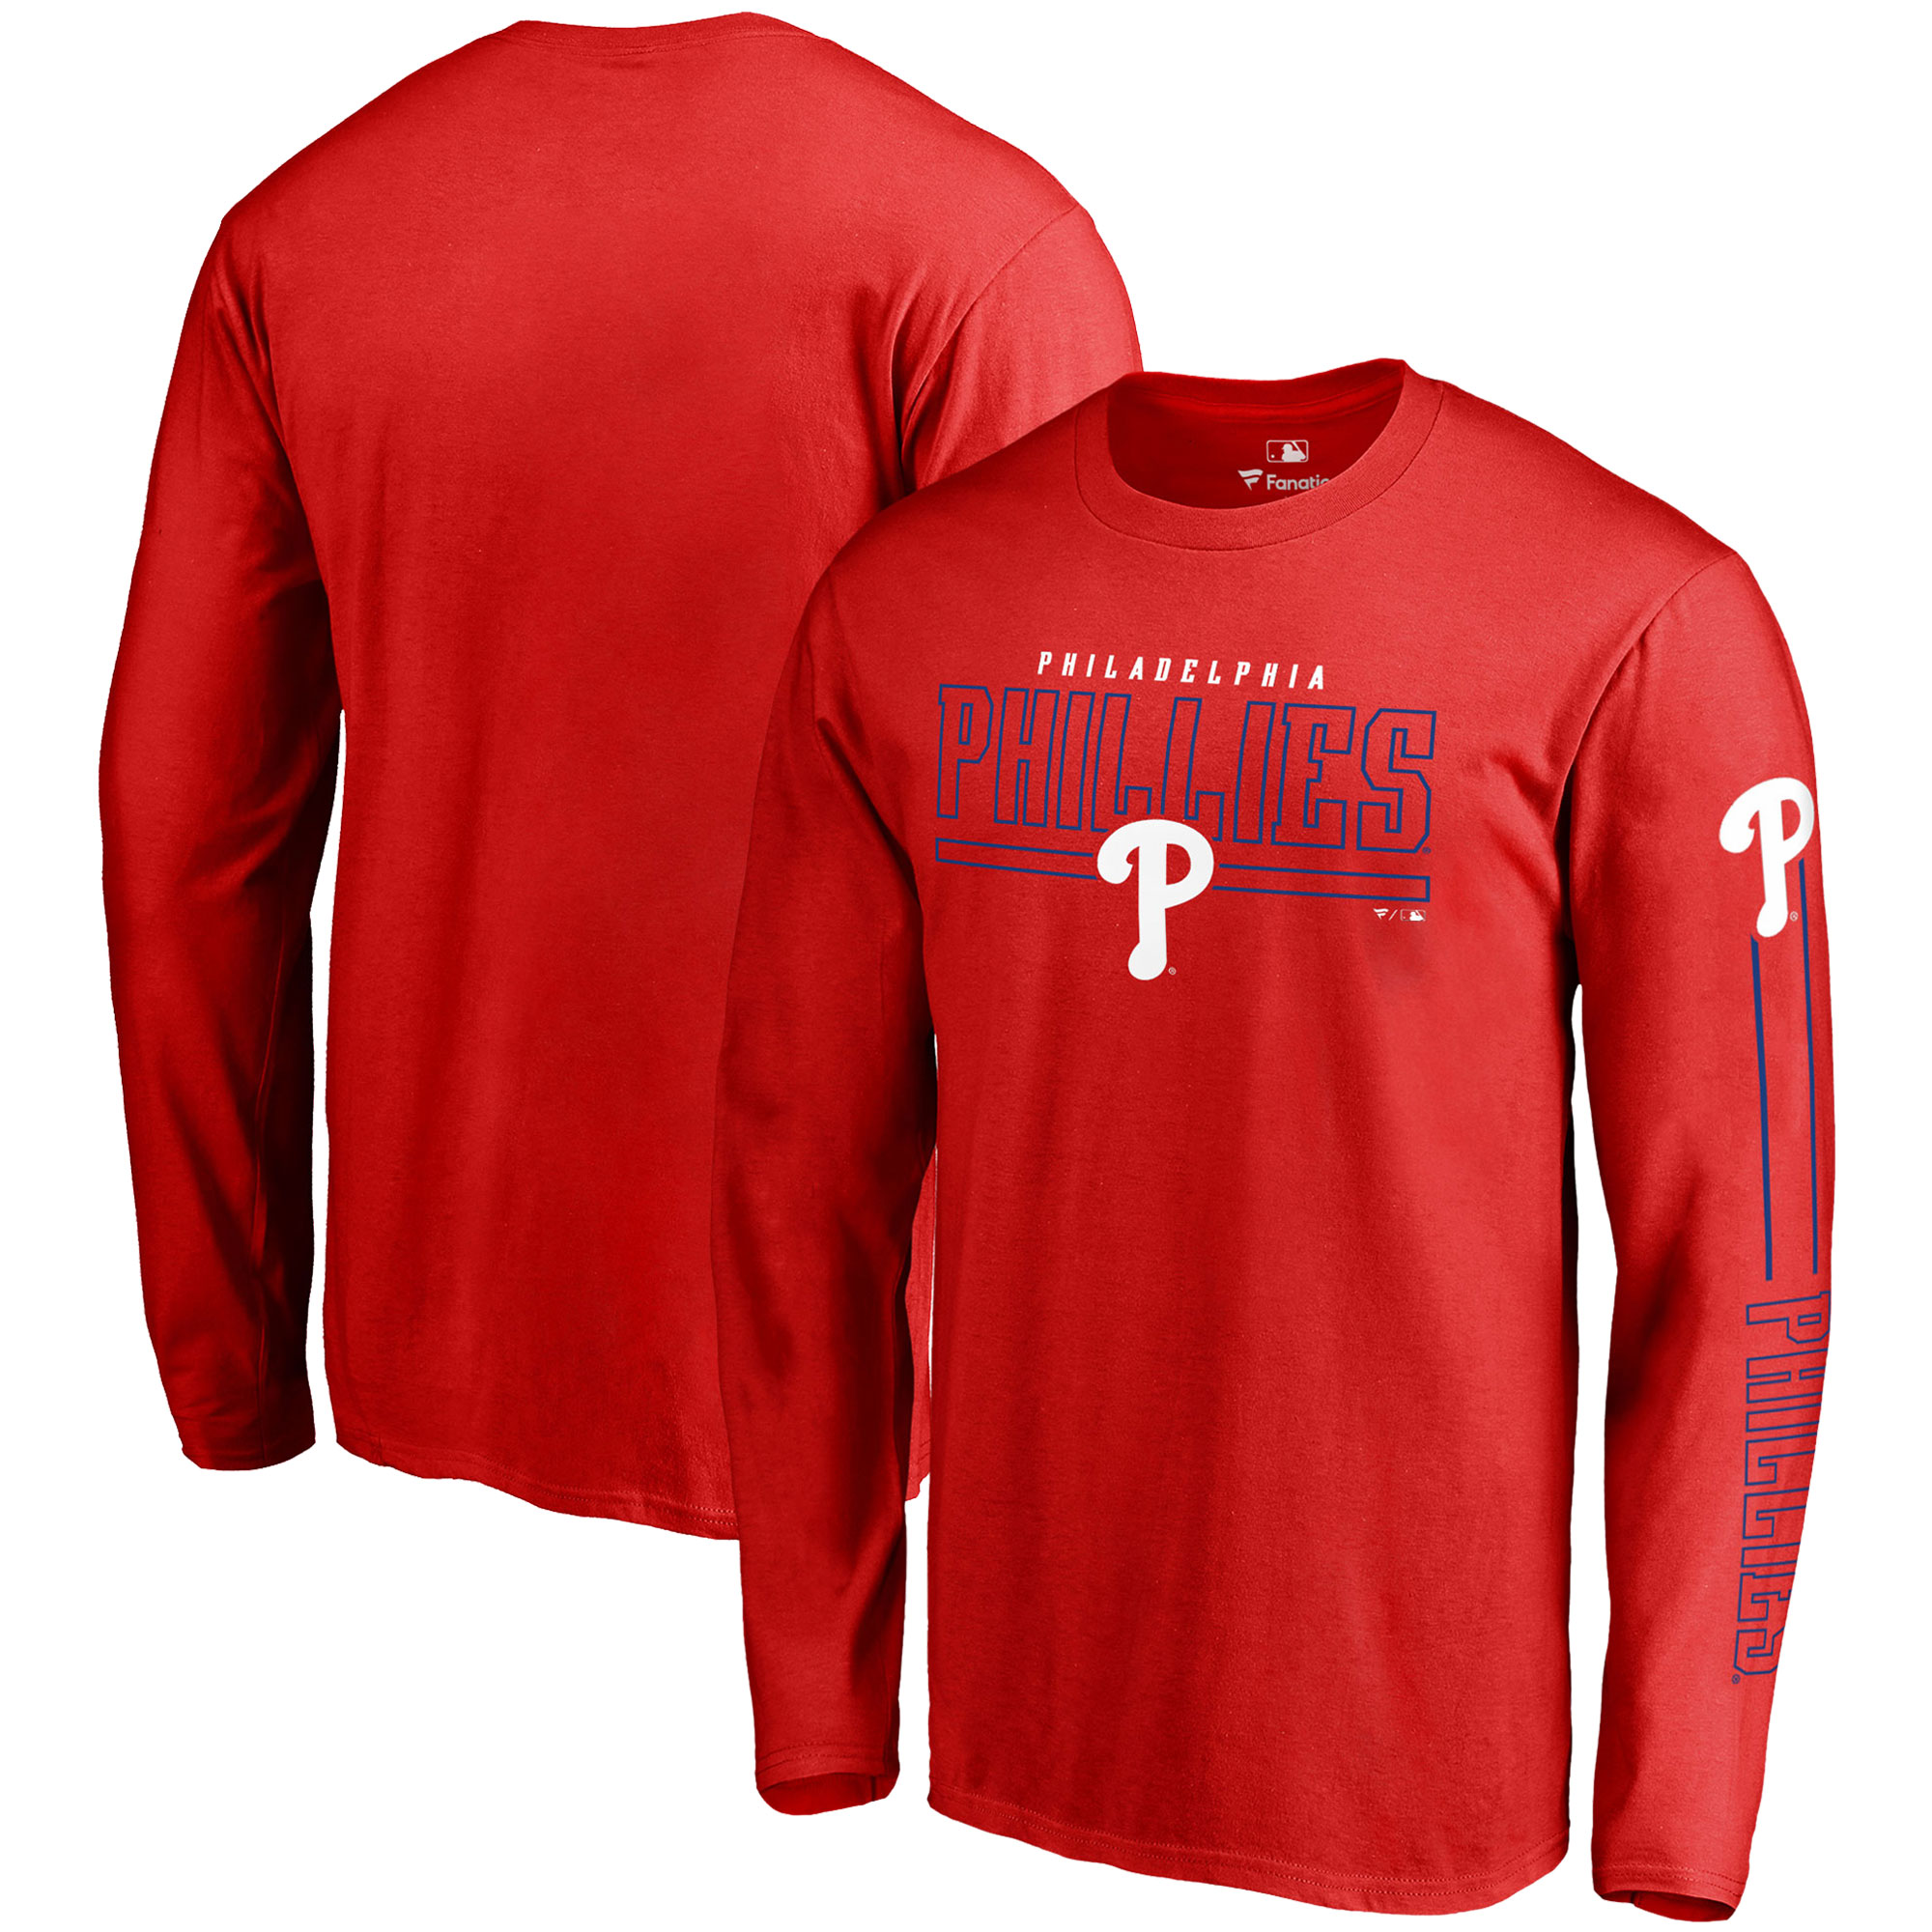 Philadelphia Phillies Fanatics Branded Front Line Long Sleeve T-Shirt - Red